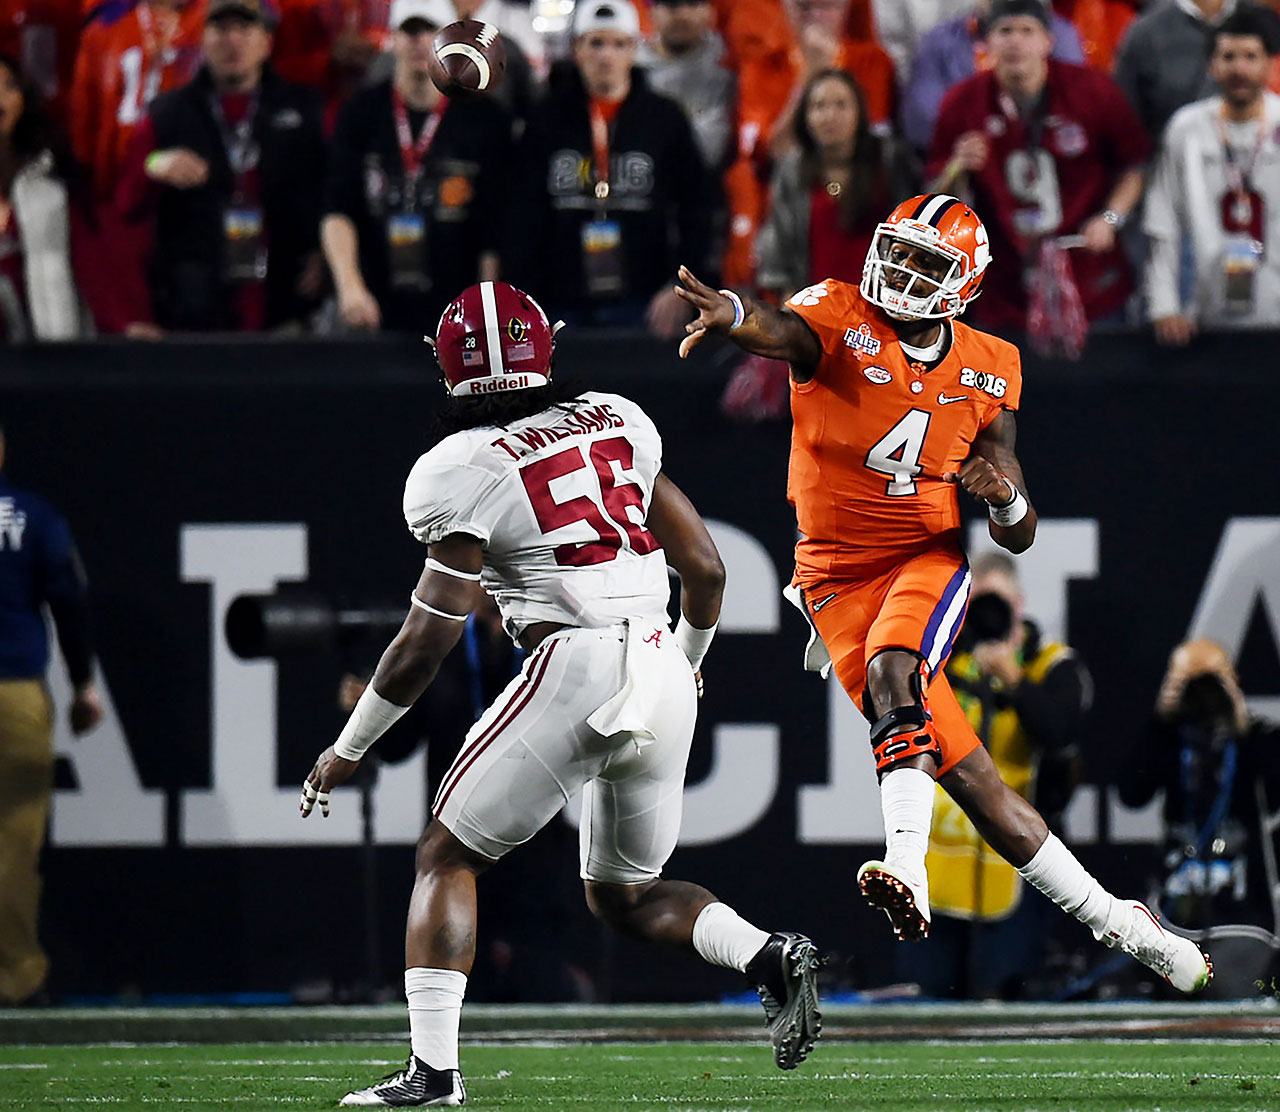 Clemson and DeShaun Watson came into the game with a 14-0 record and a No. 1 ranking. The Tigers led 24-21 after three quarters but were undone in final period.